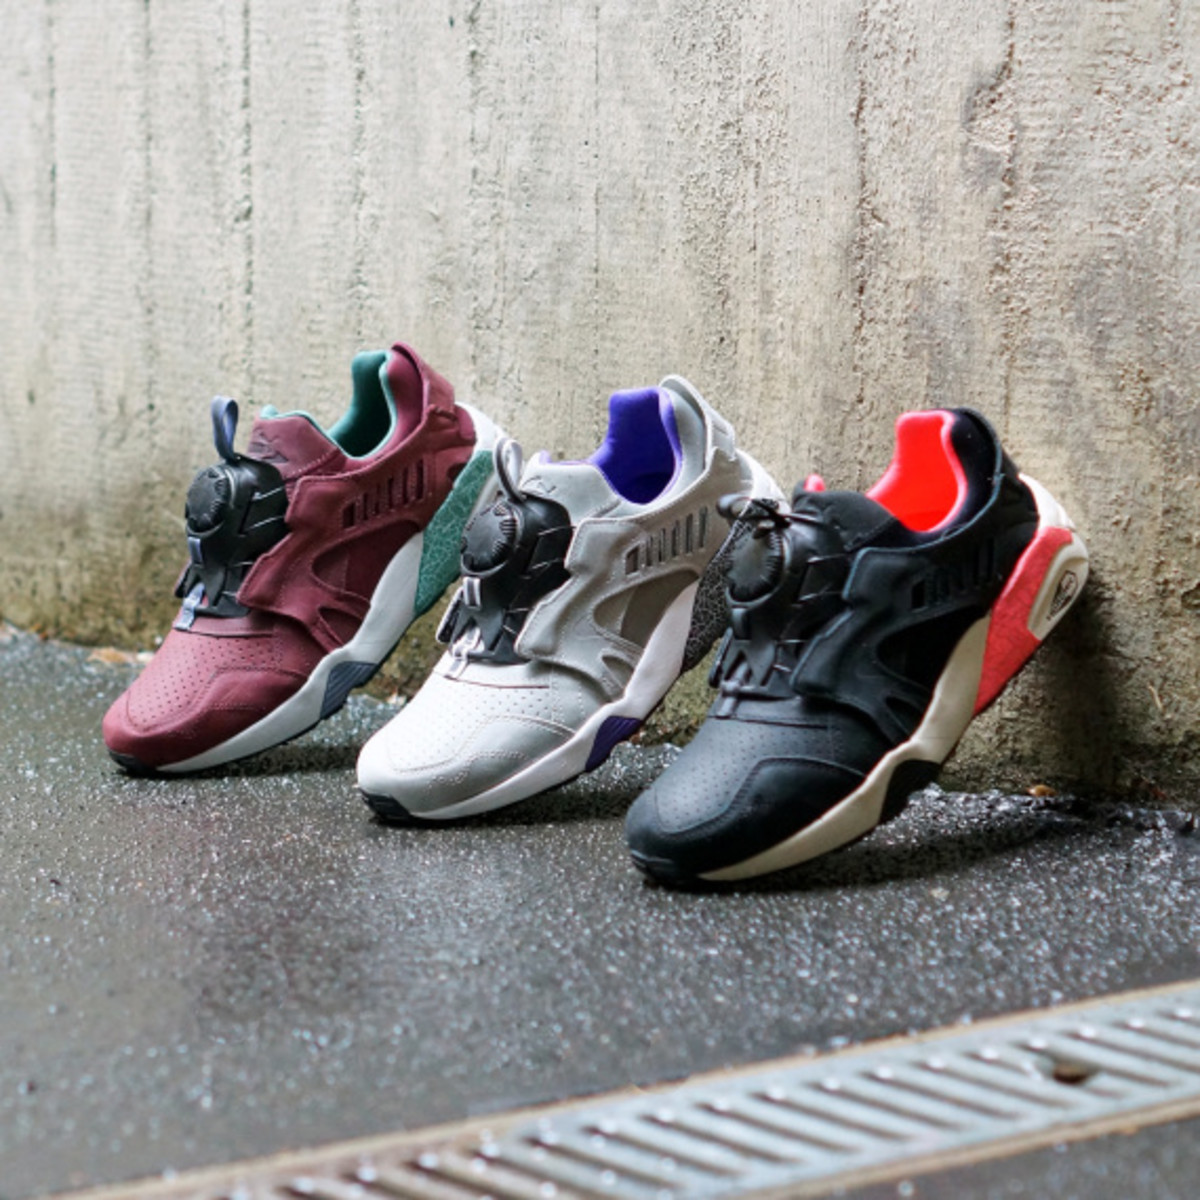 puma-disc-blaze-crackle-pack-05